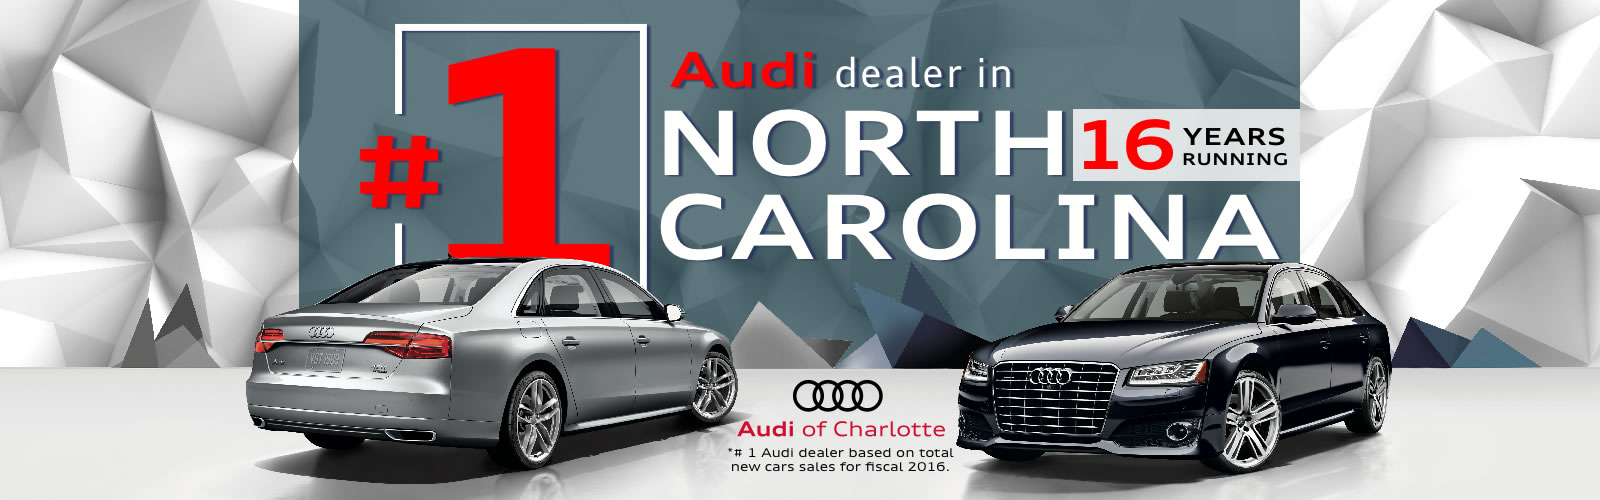 Automotive Marketing Audi Of Charlotte Case Study M Agency - Audi charlotte